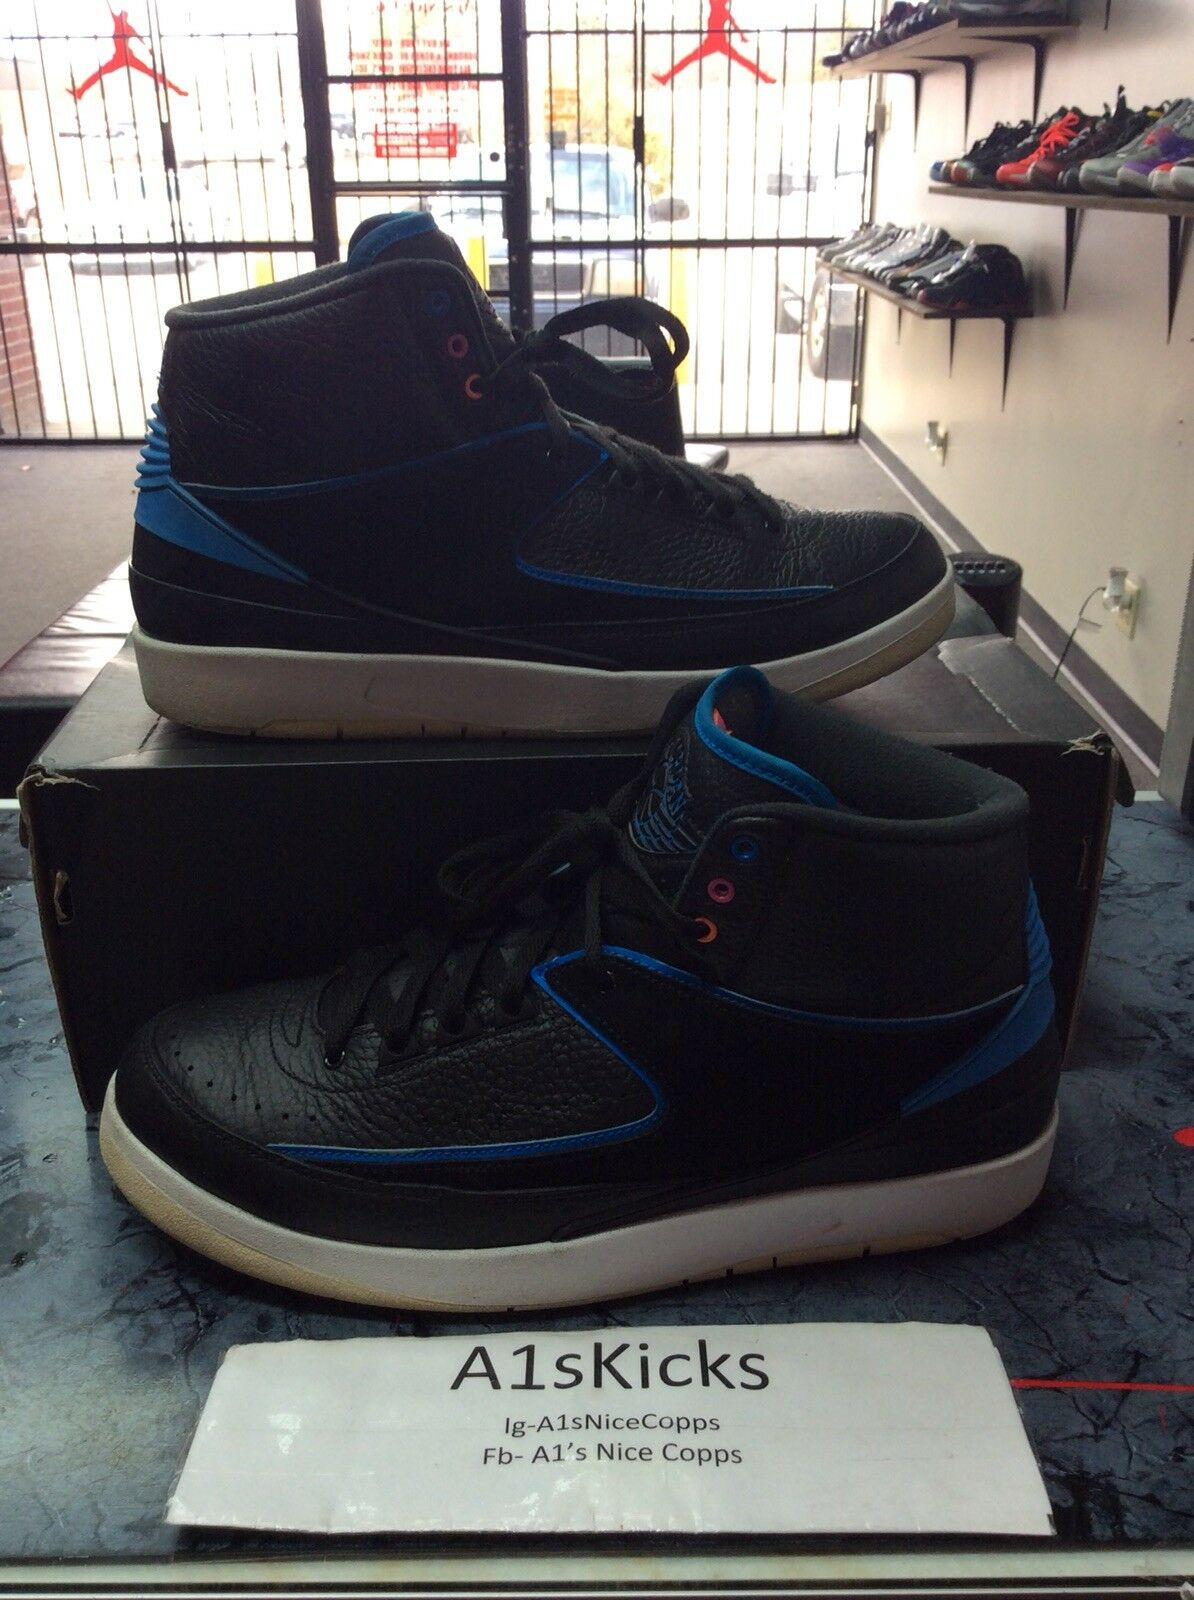 Nike Air Jordan 2 Retro Radio Raheem Blue/Black 834274-014 Size 10.5